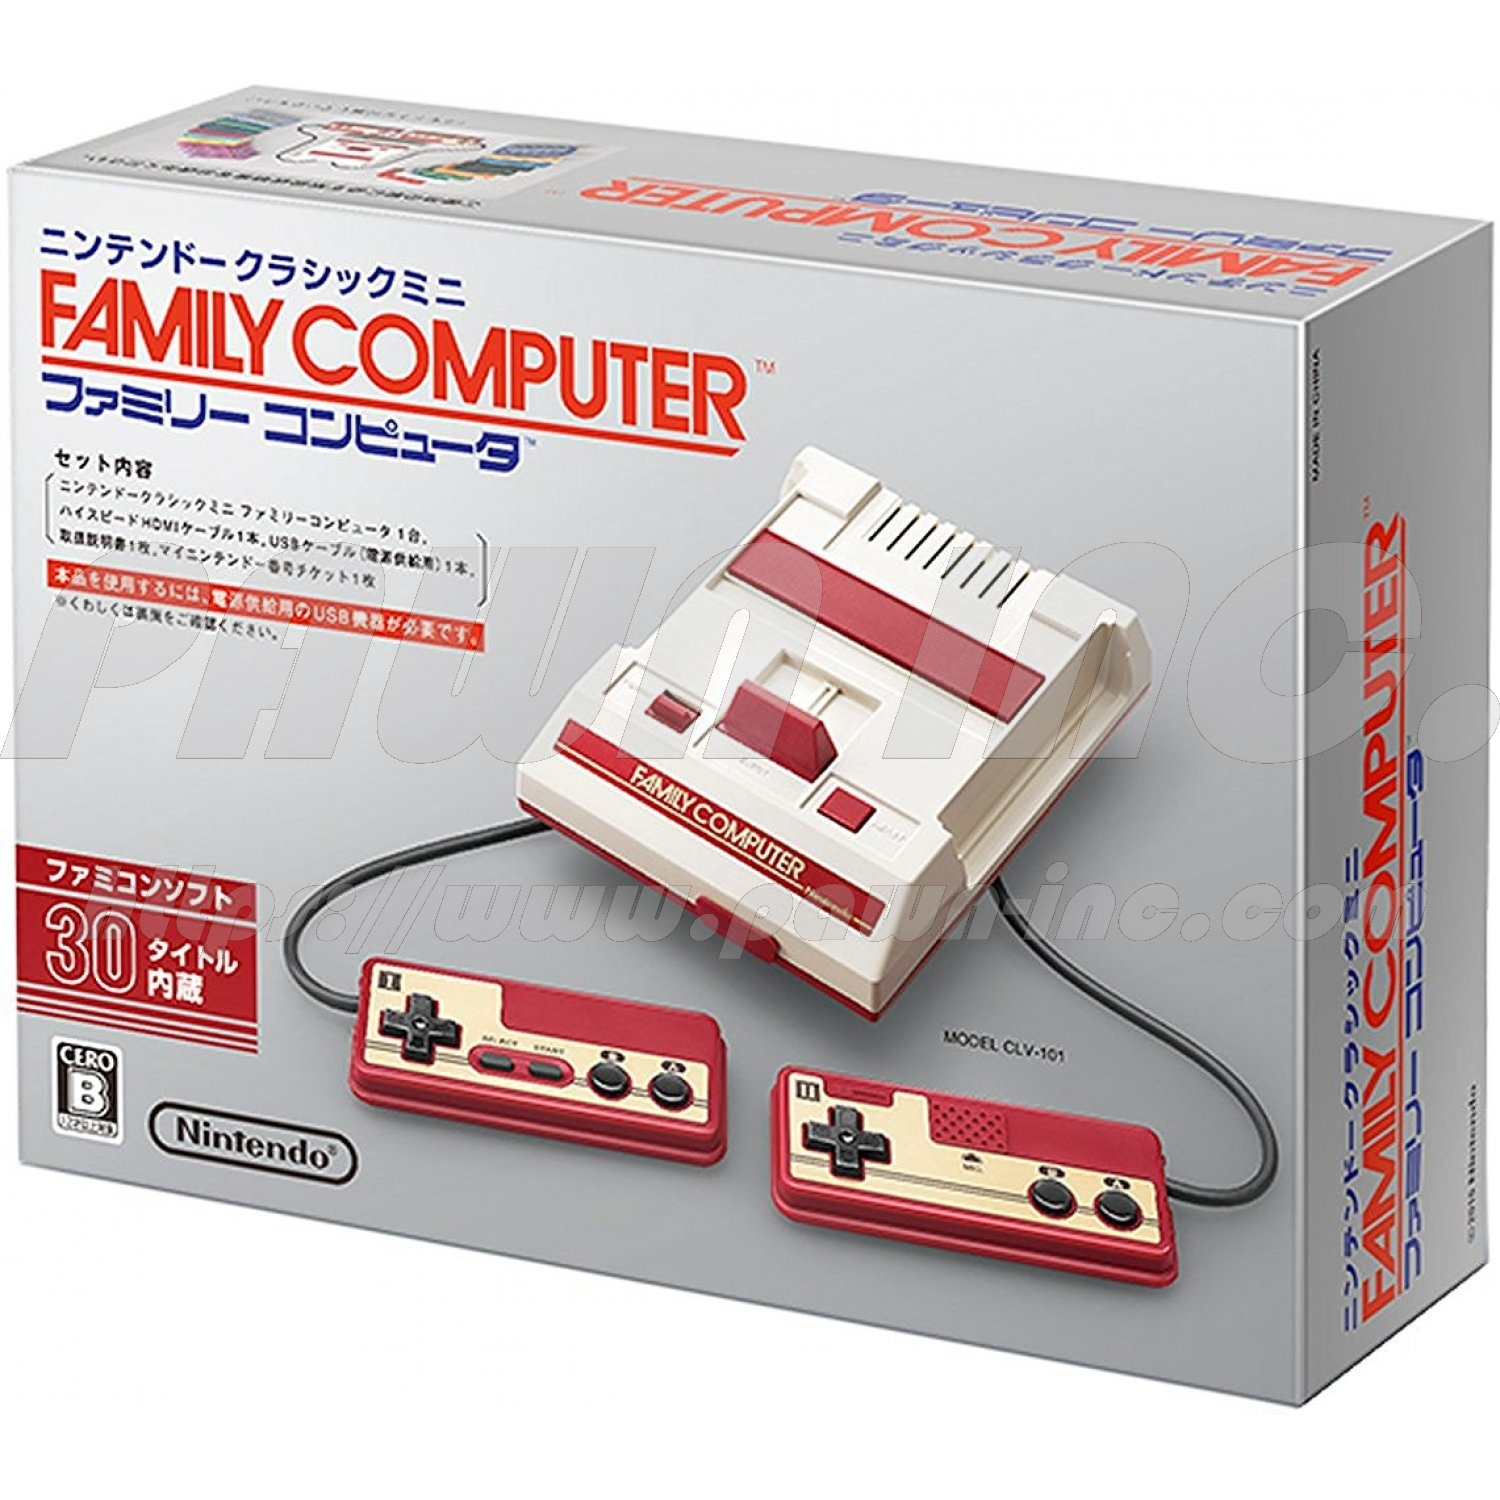 Nintendo Classic Mini Family Computer with Free Limited Famicom T-Shirt